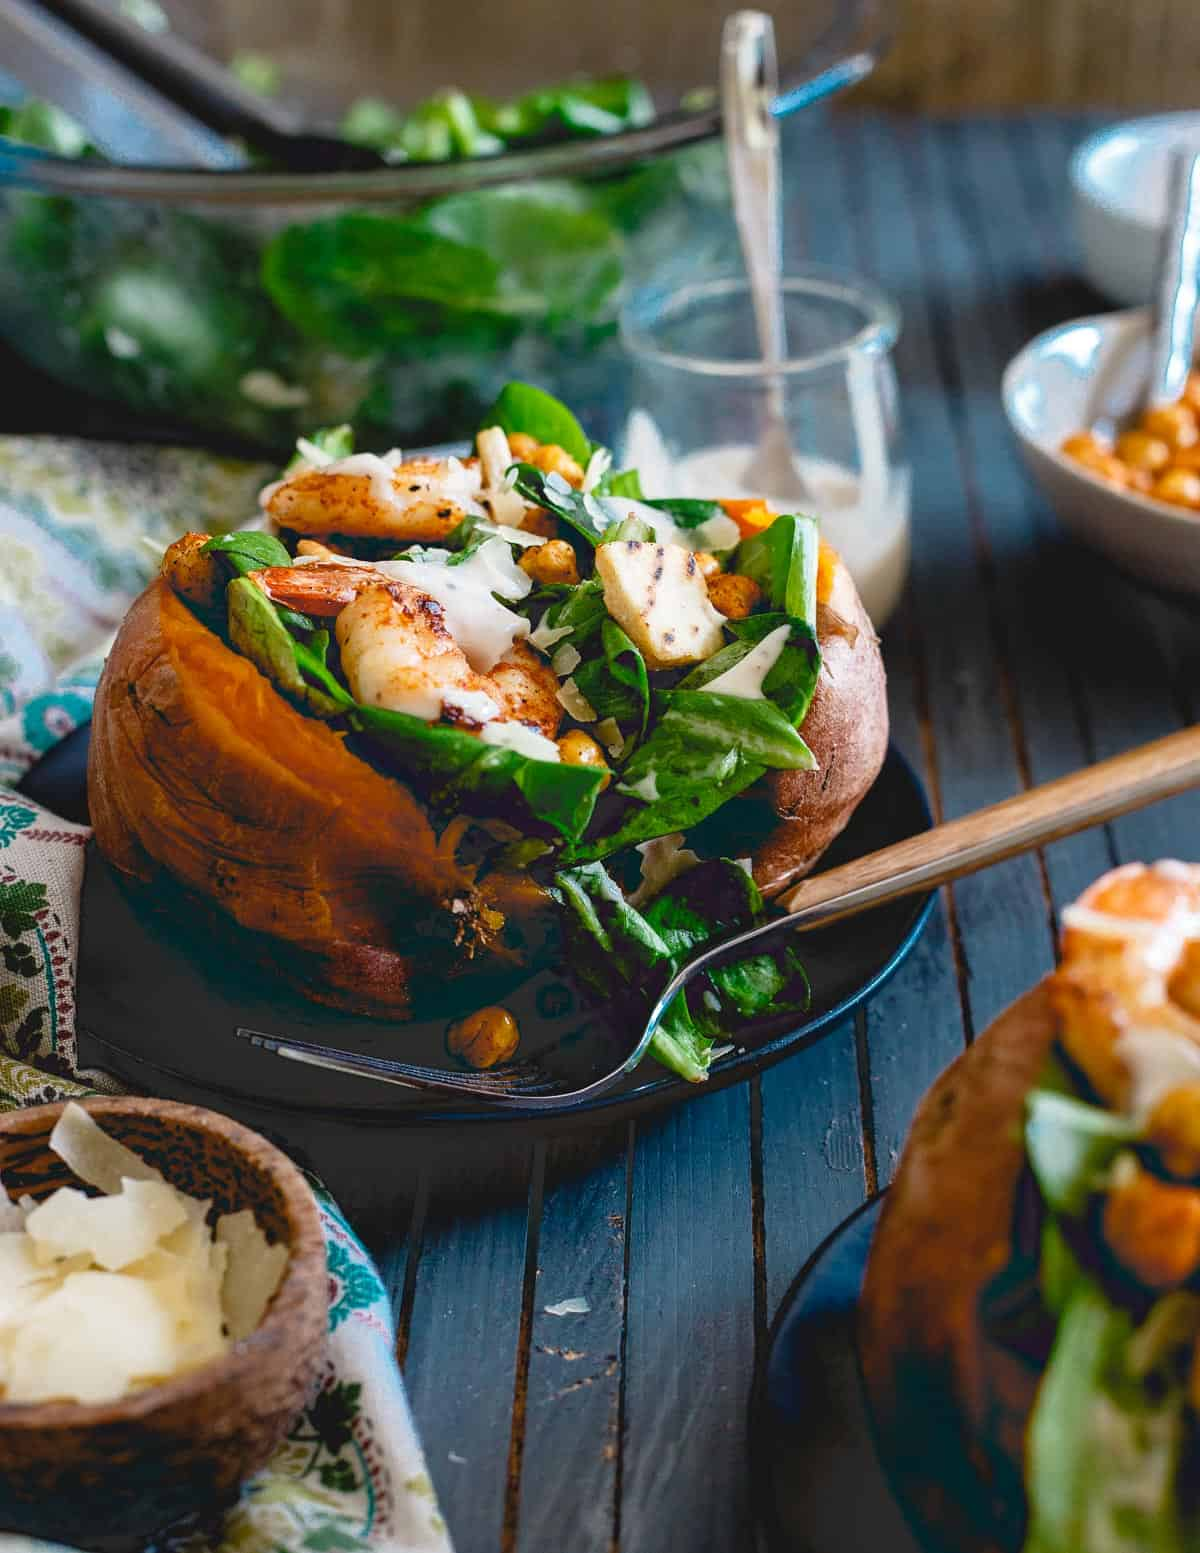 Caesar salad stuffed sweet potatoes with shrimp and chickpeas are perfect for a healthy meal not shy on flavor!